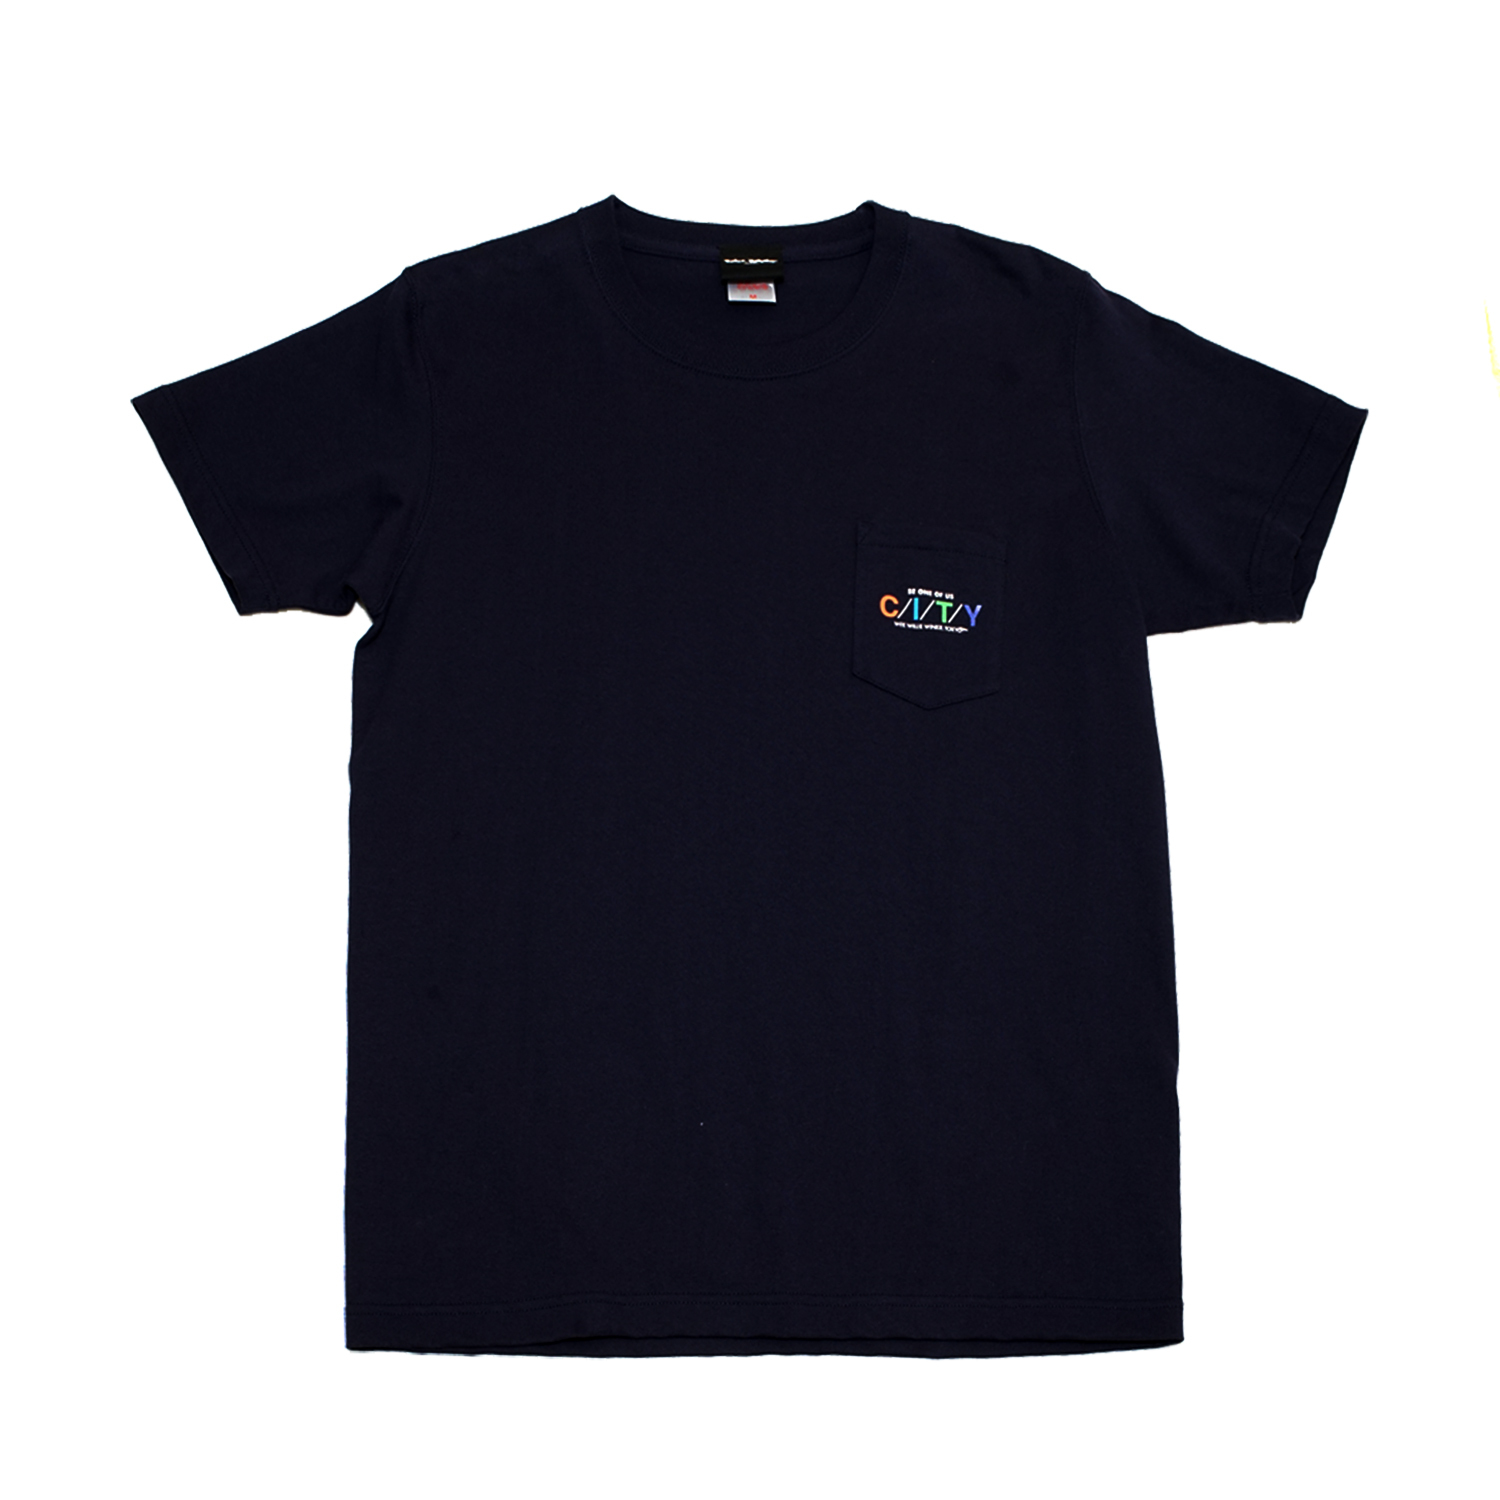 WWWTYO CITY POCKET TEE (NAVY)